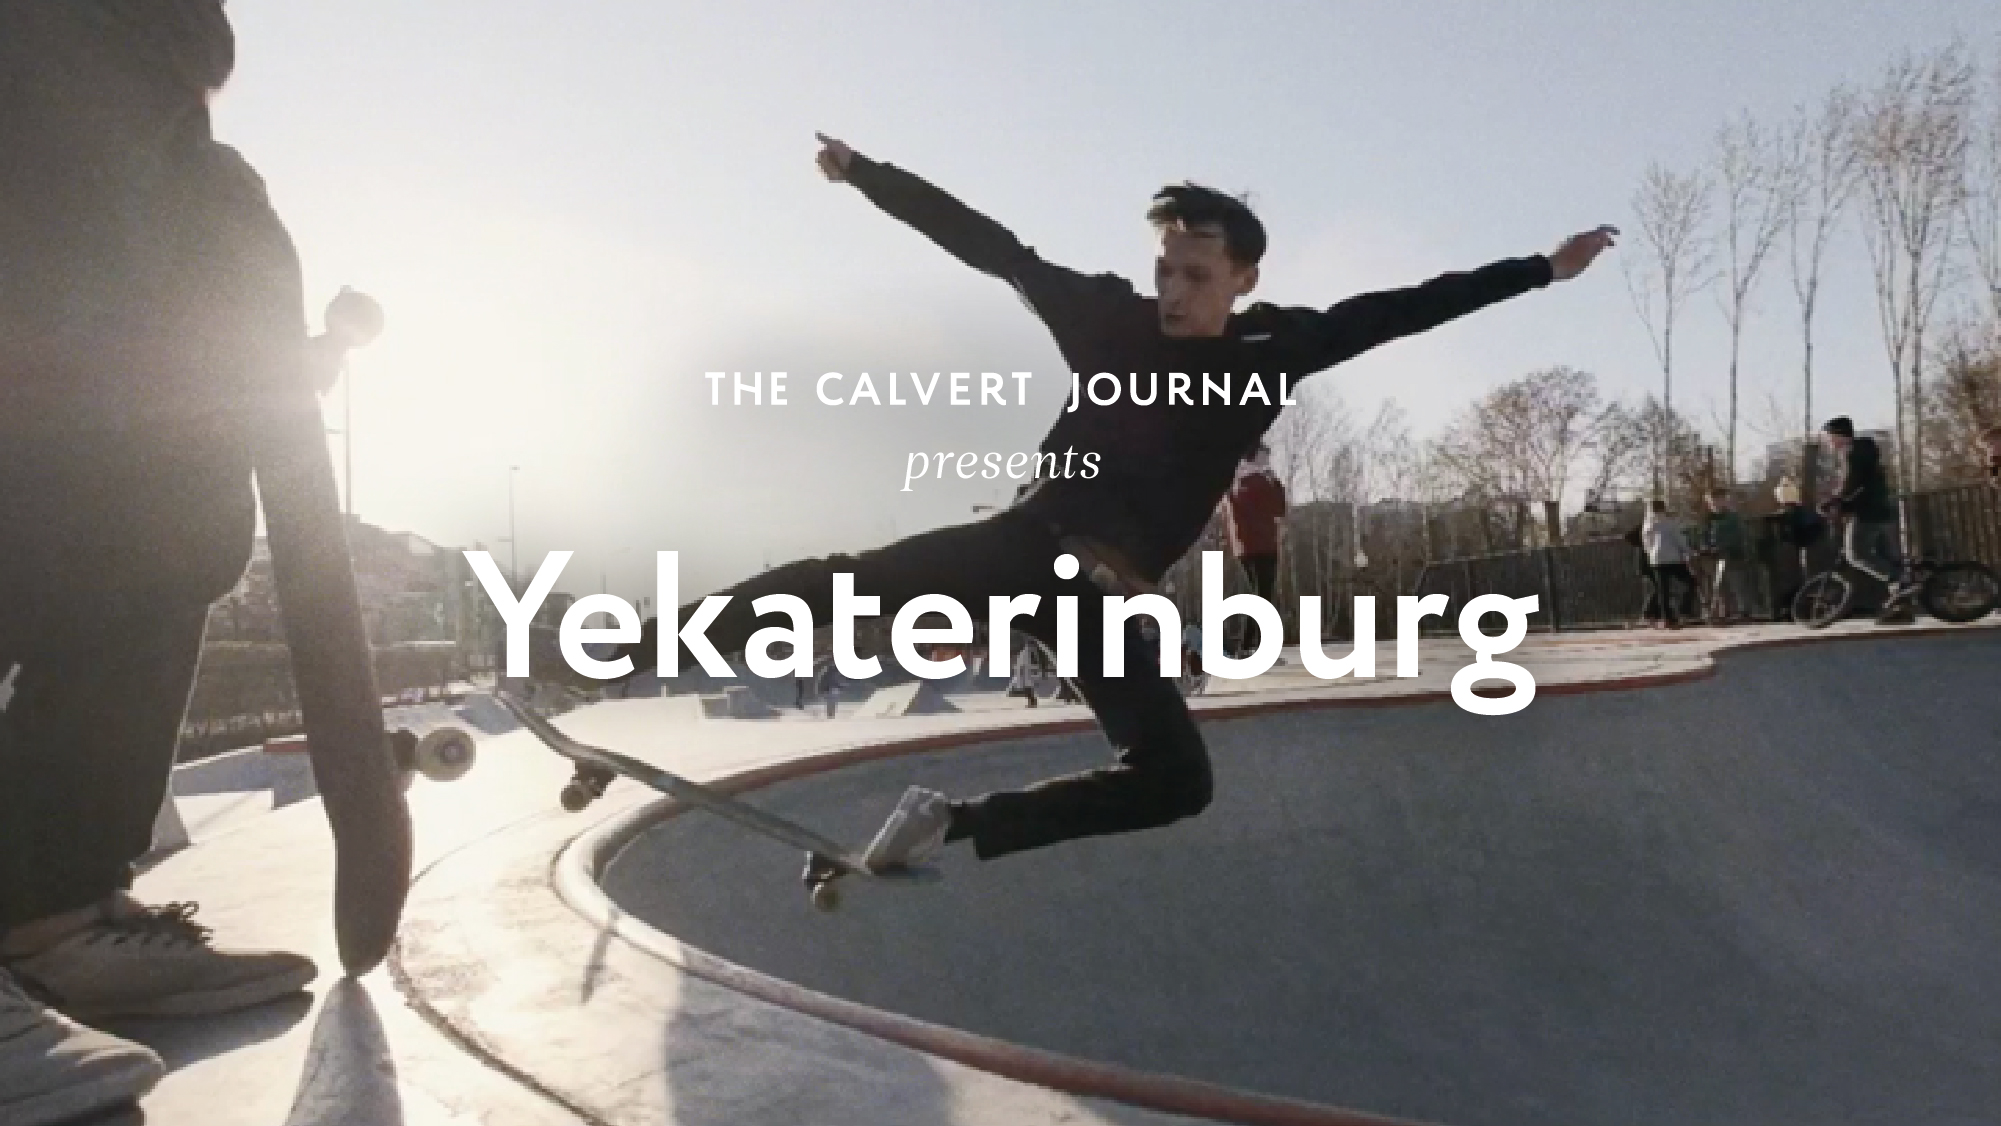 Close up: get to know the Constructivist architecture and spirited nightlife of Yekaterinburg